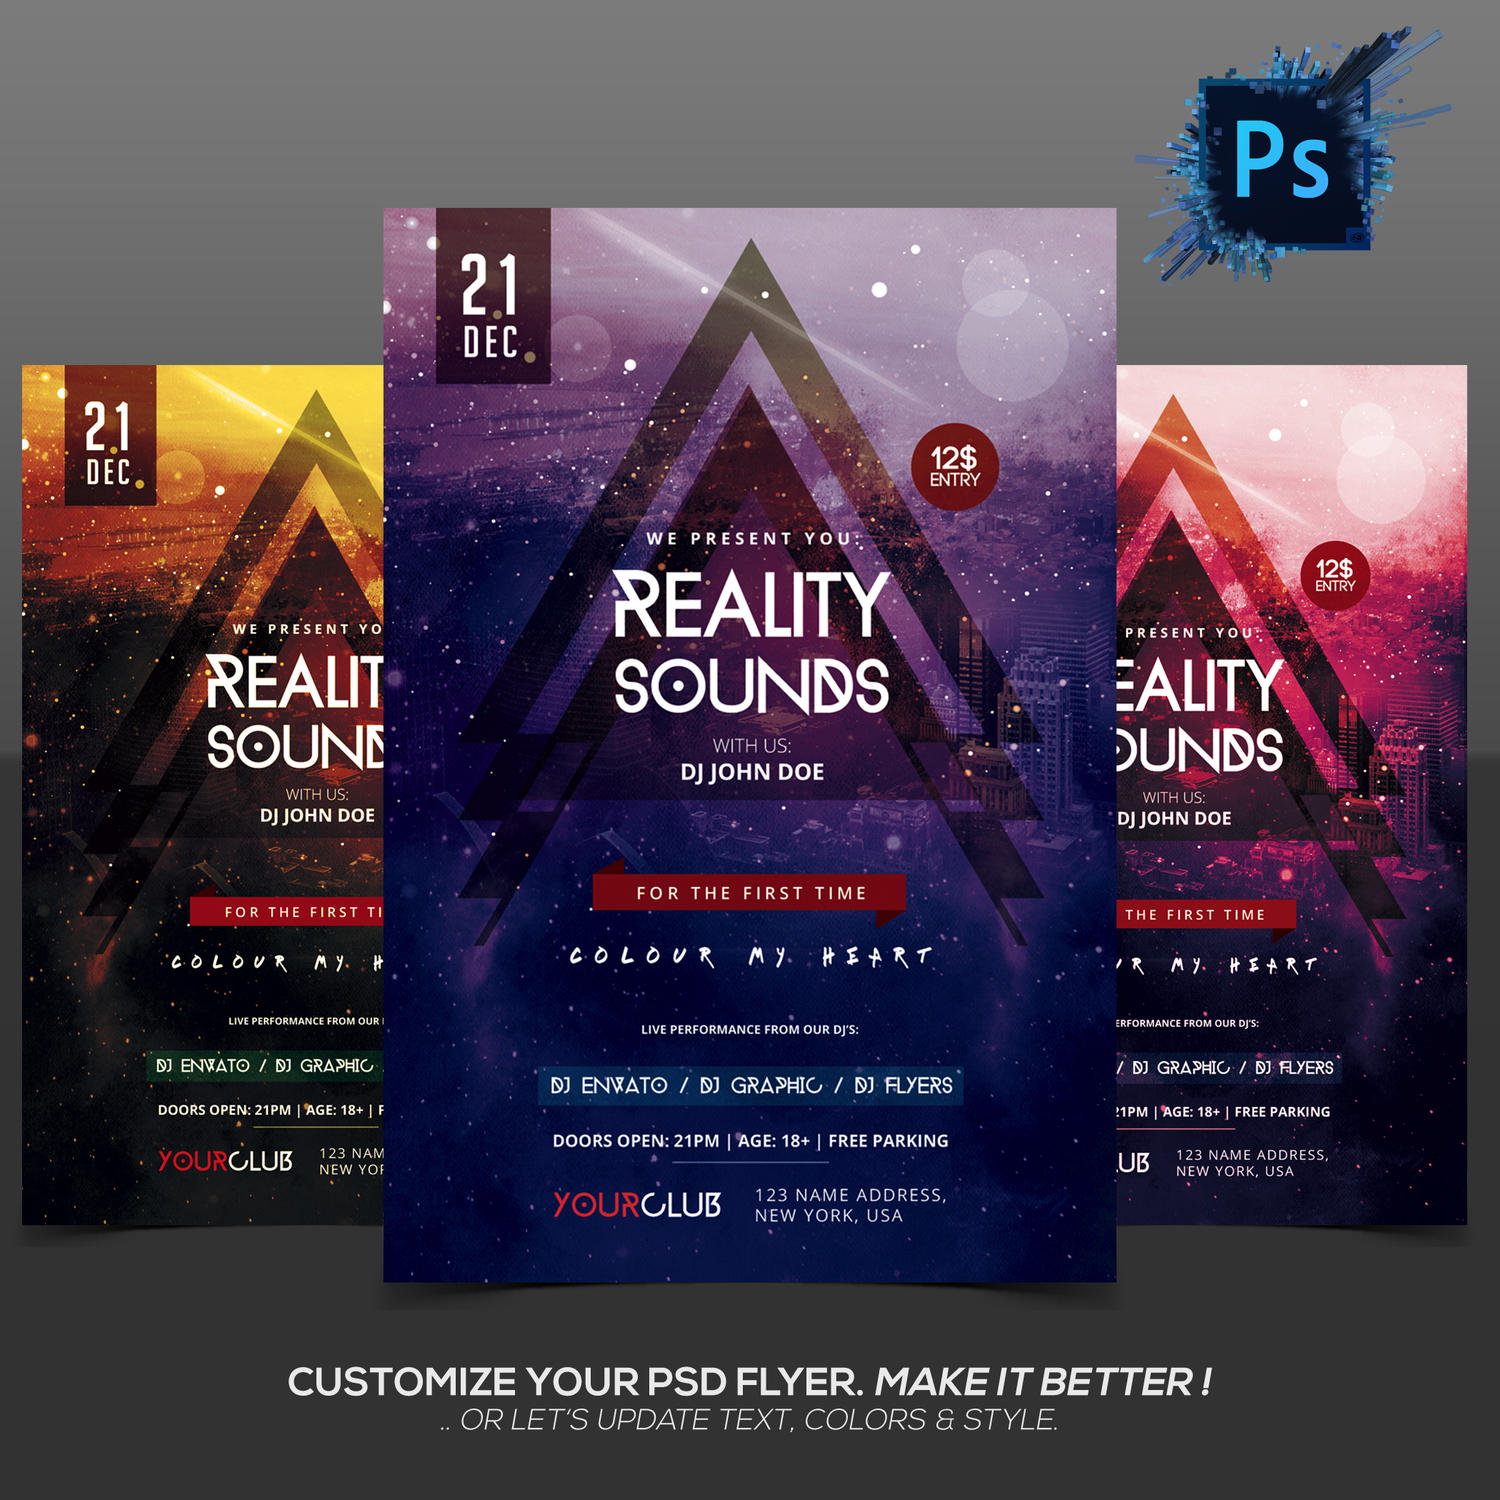 Customization PSD Flyer by fidanselmani - 95275